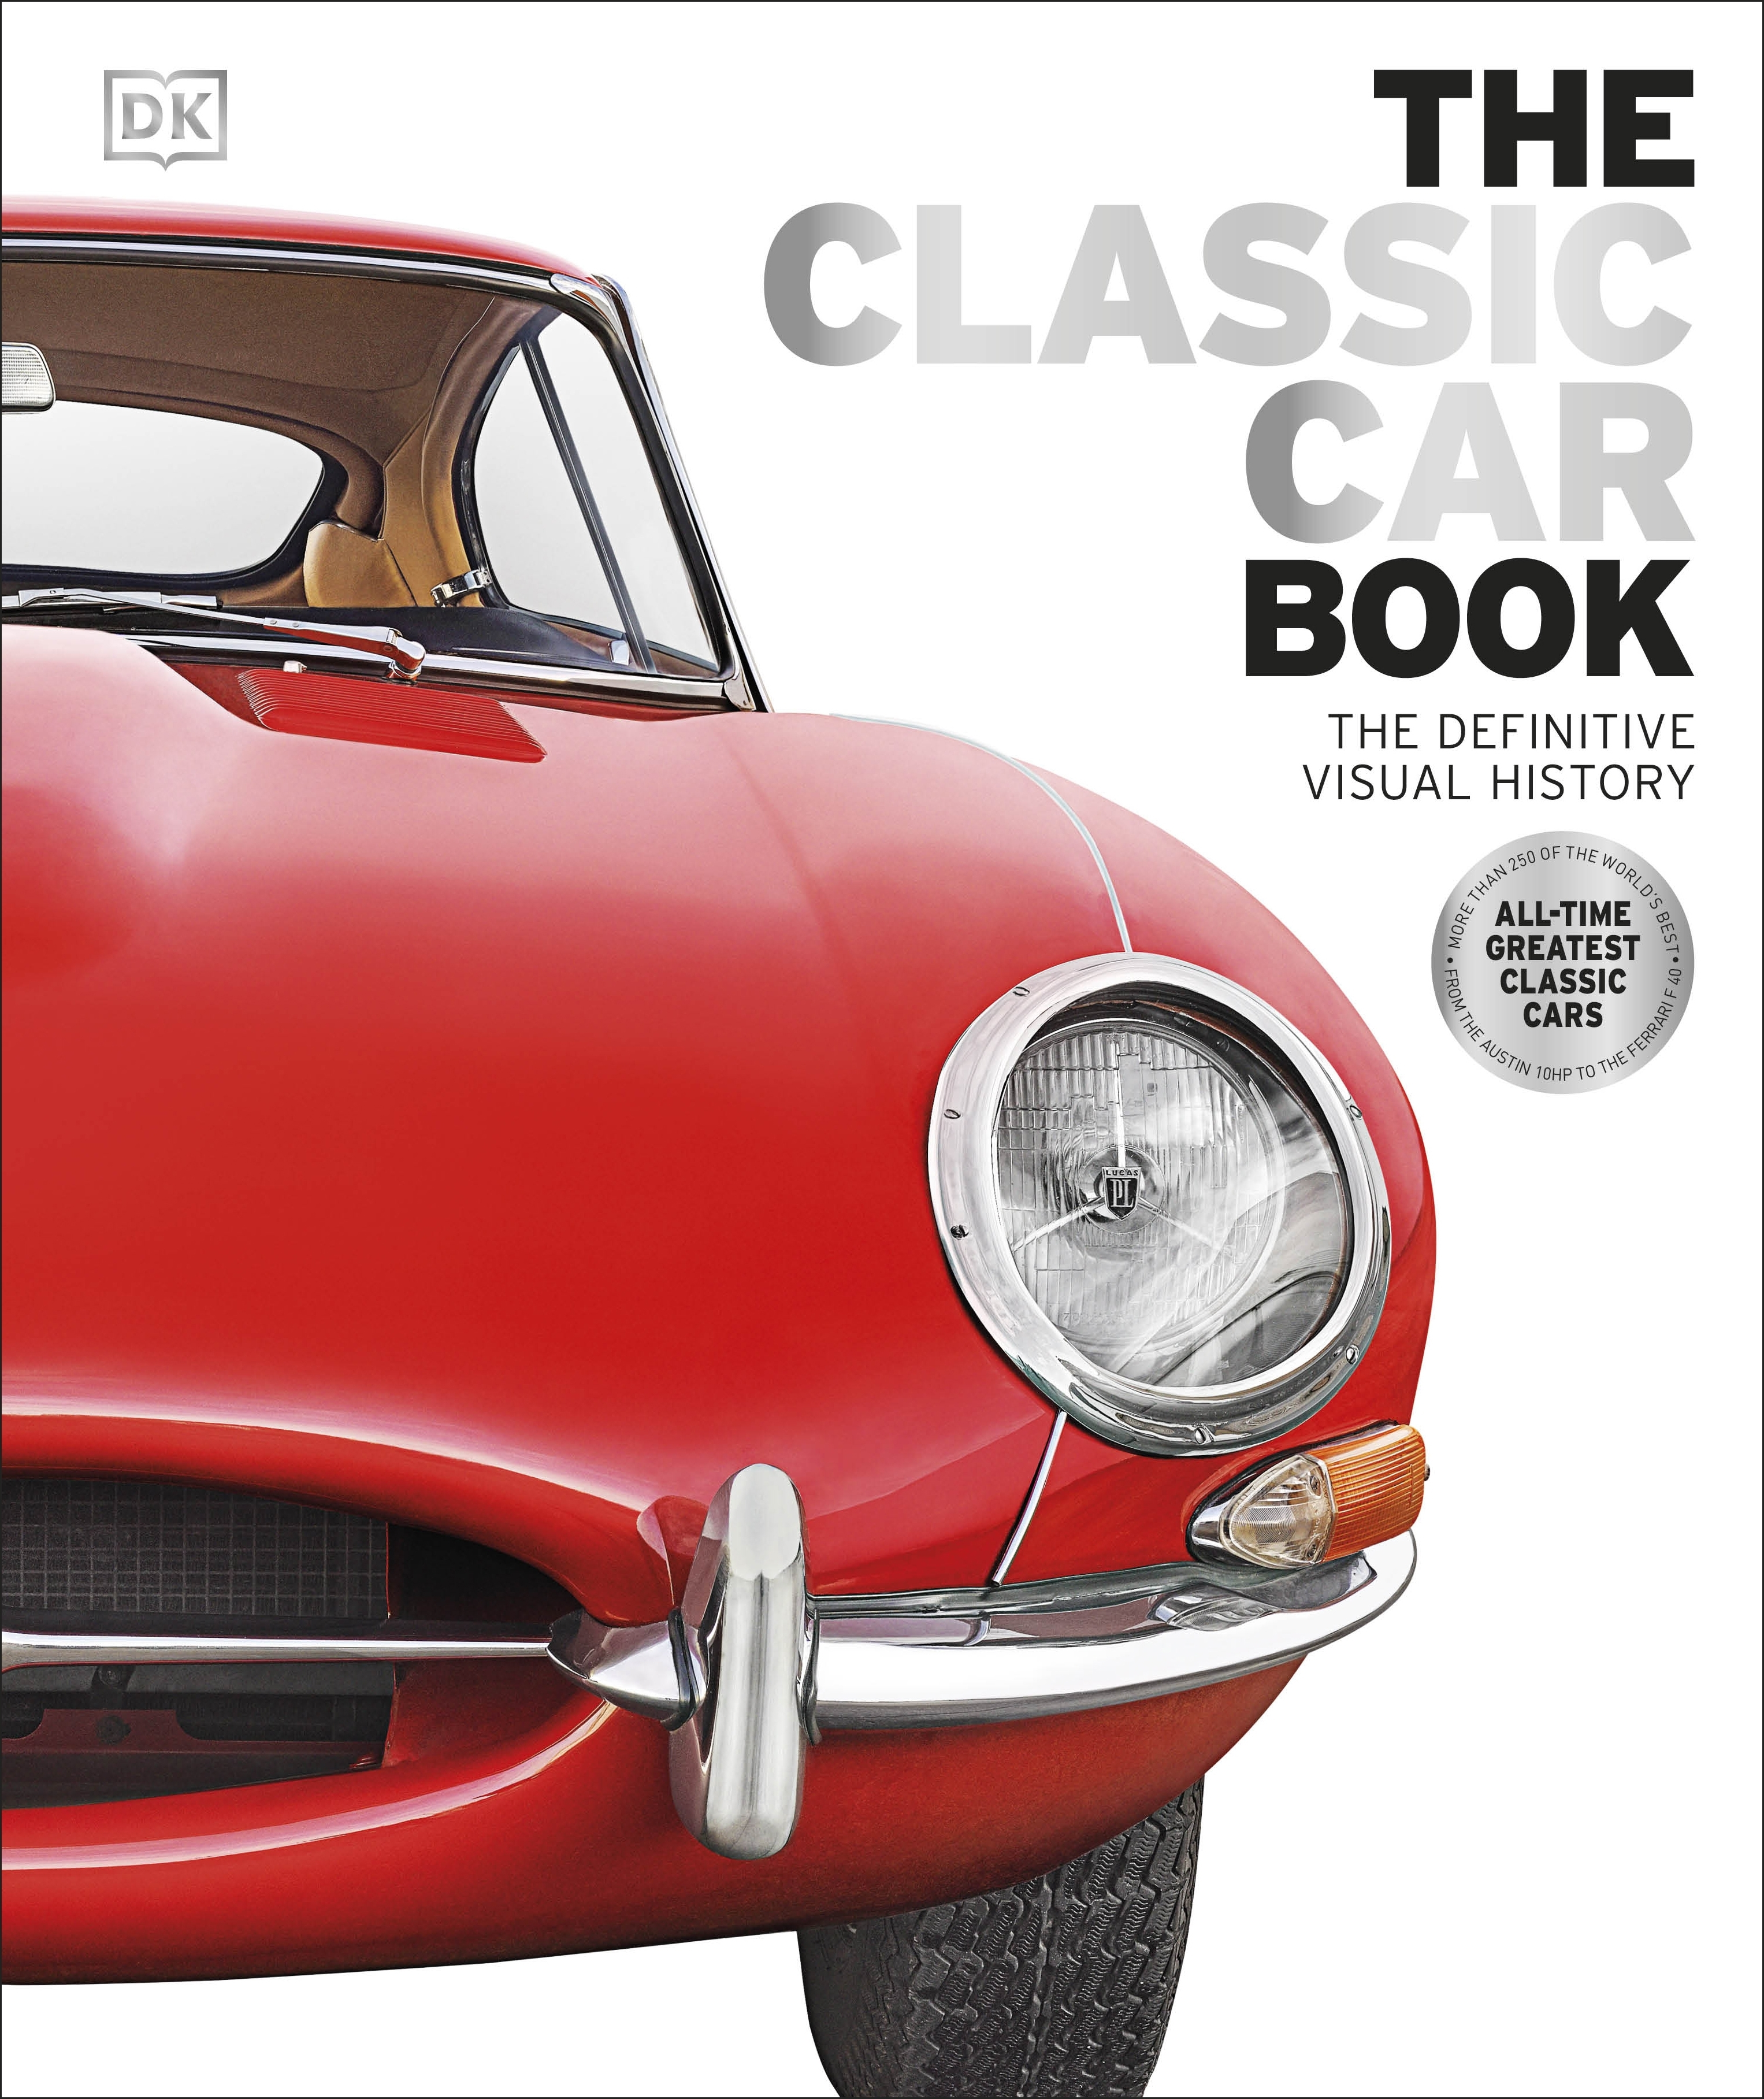 Classic Car Book: Visual History by DK - Penguin Books New Zealand